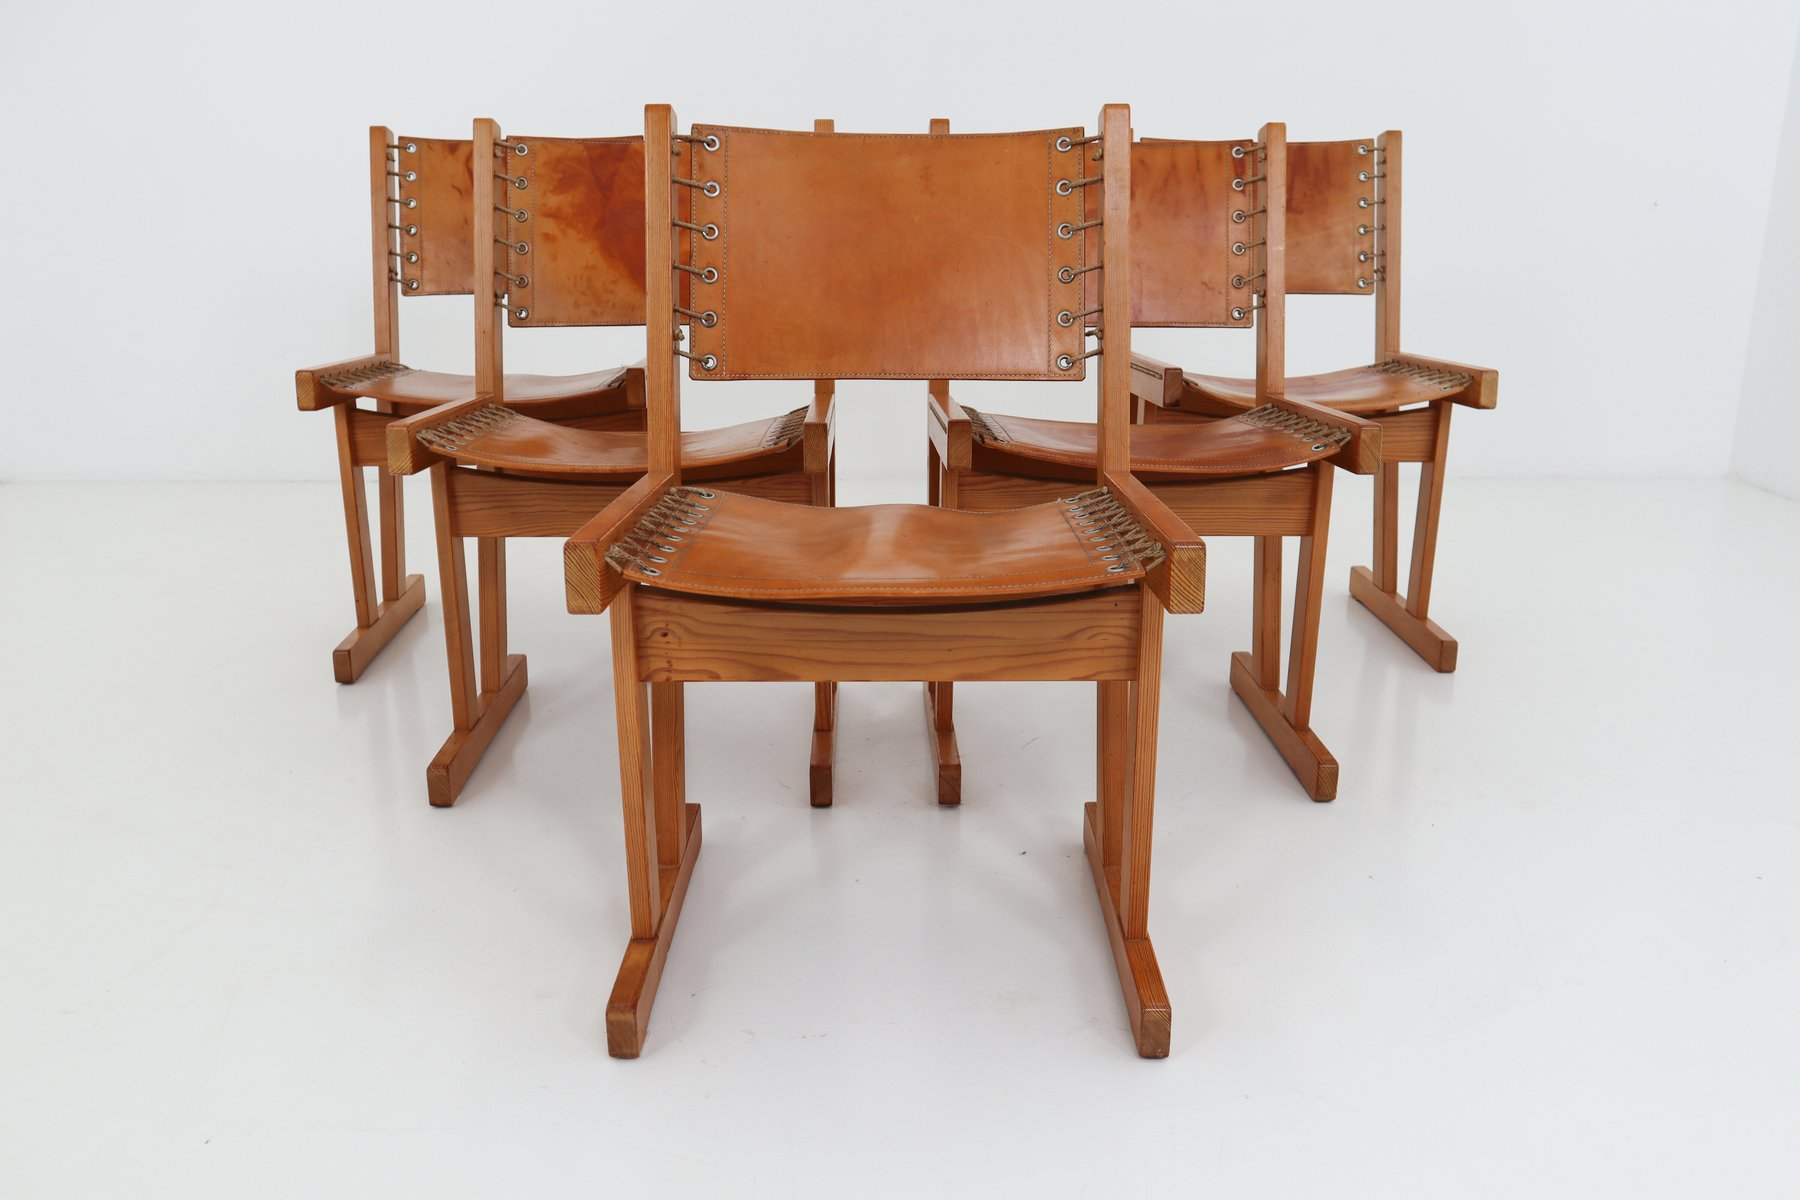 Safari Chairs In Thick Cognac Saddle Leather U0026 Solid Pine, 1970s, Set Of 5